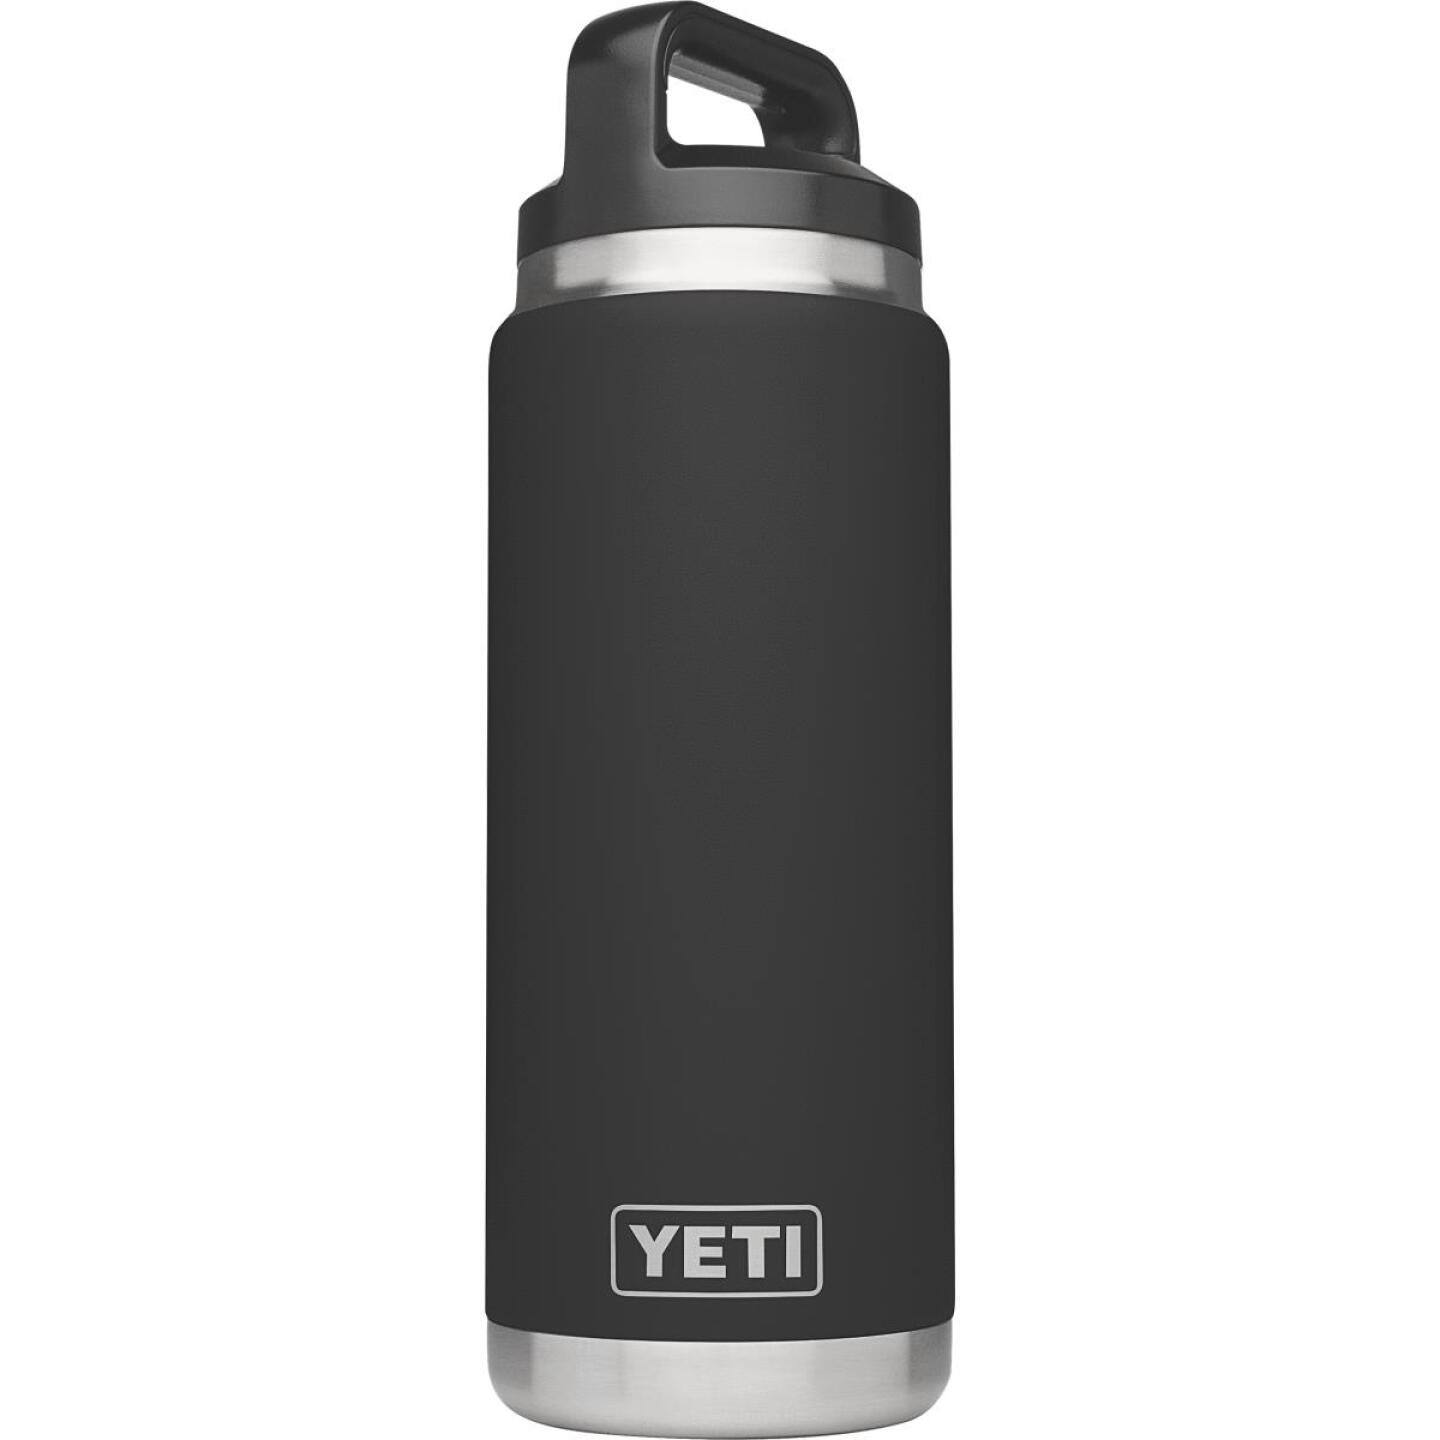 Yeti Rambler 26 Oz. Black Stainless Steel Insulated Vacuum Bottle Image 1